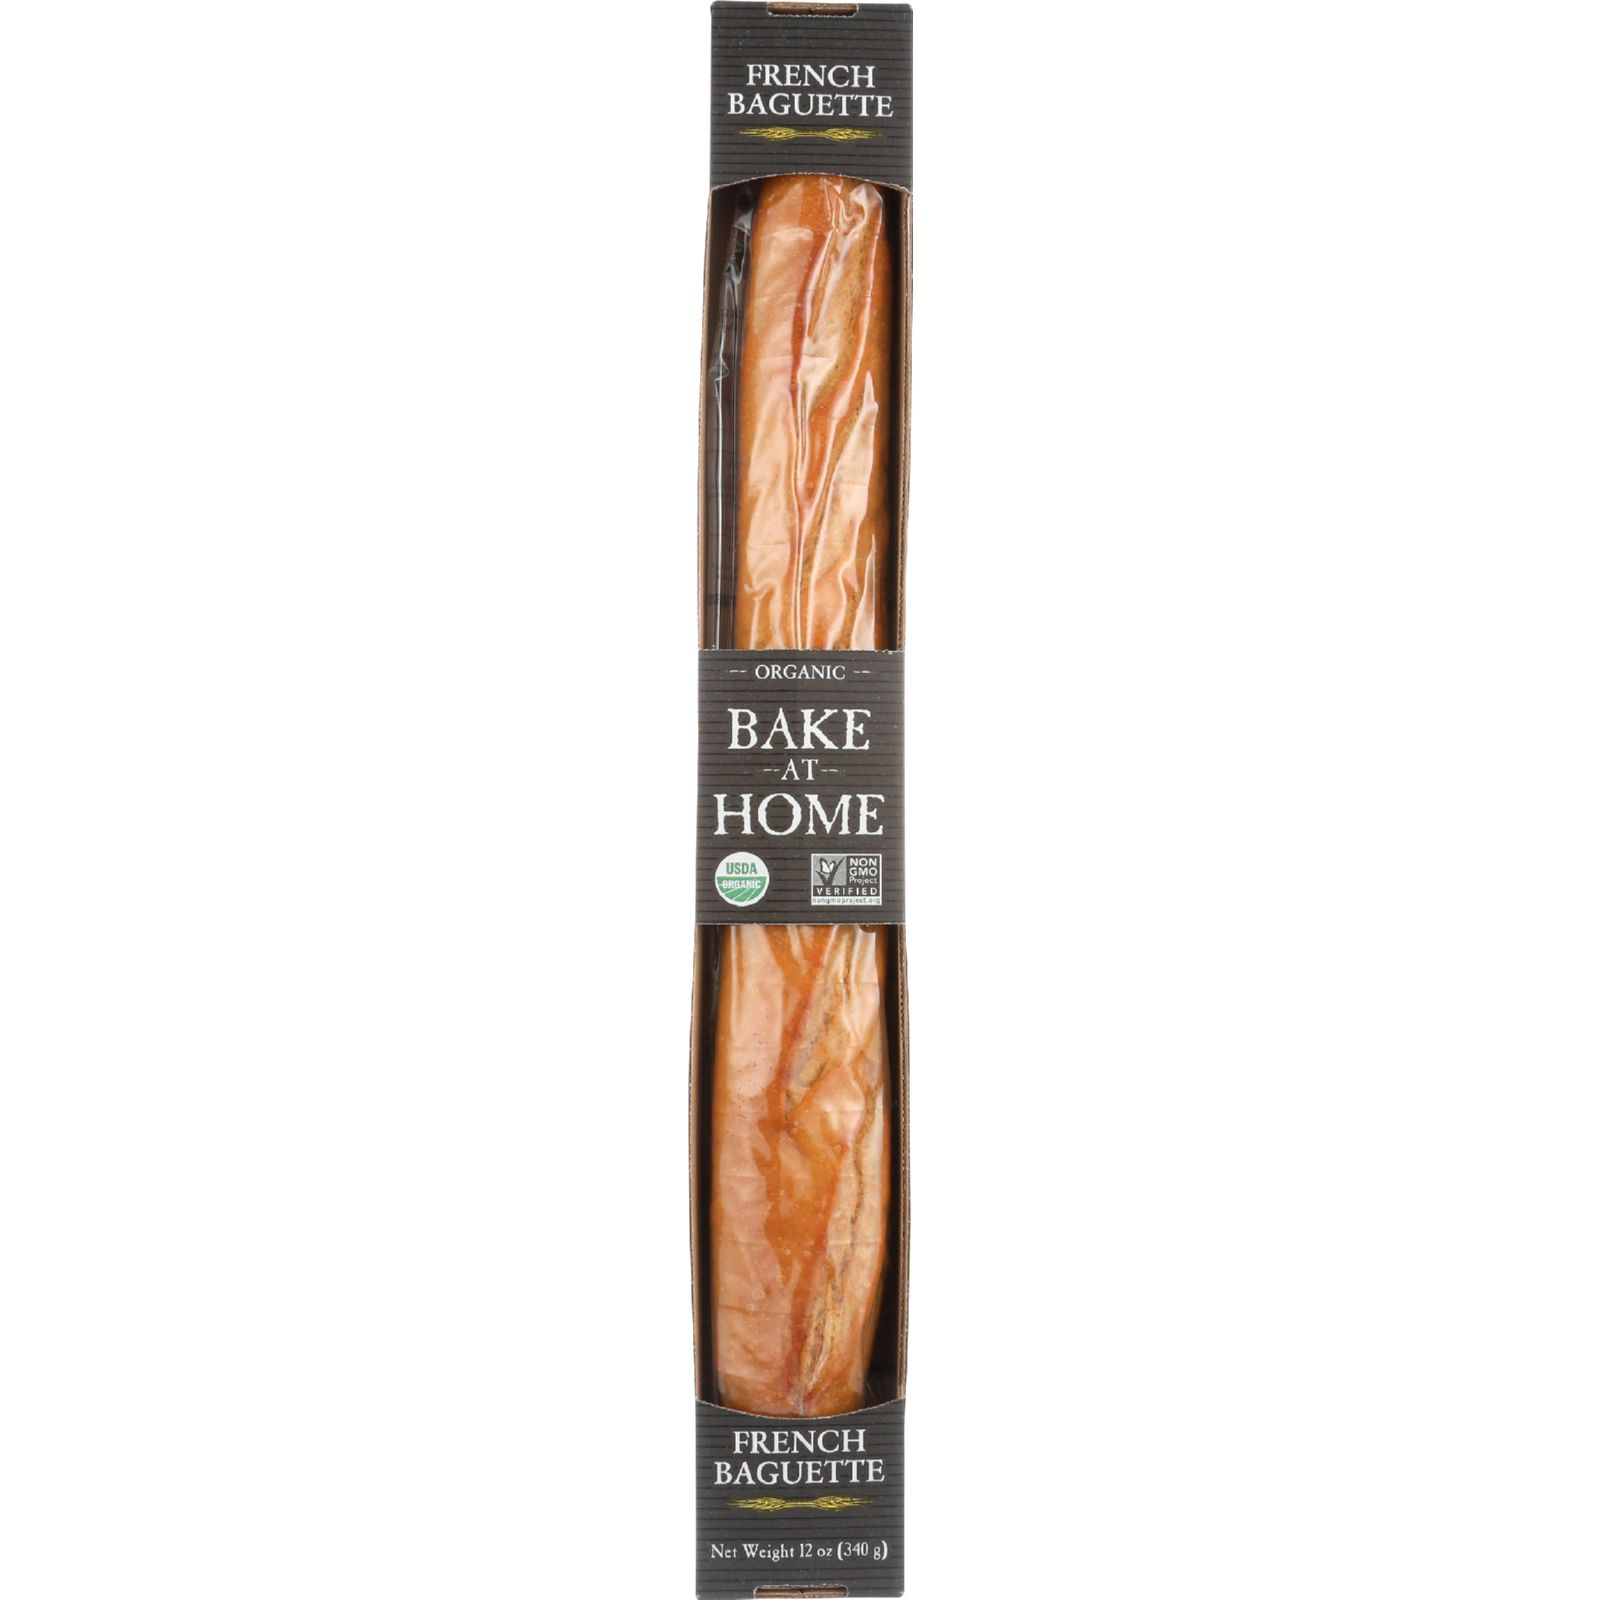 Essential Baking Company Bread - Organic - Bake At Home - French Baguette - 12 Oz - Case Of 12